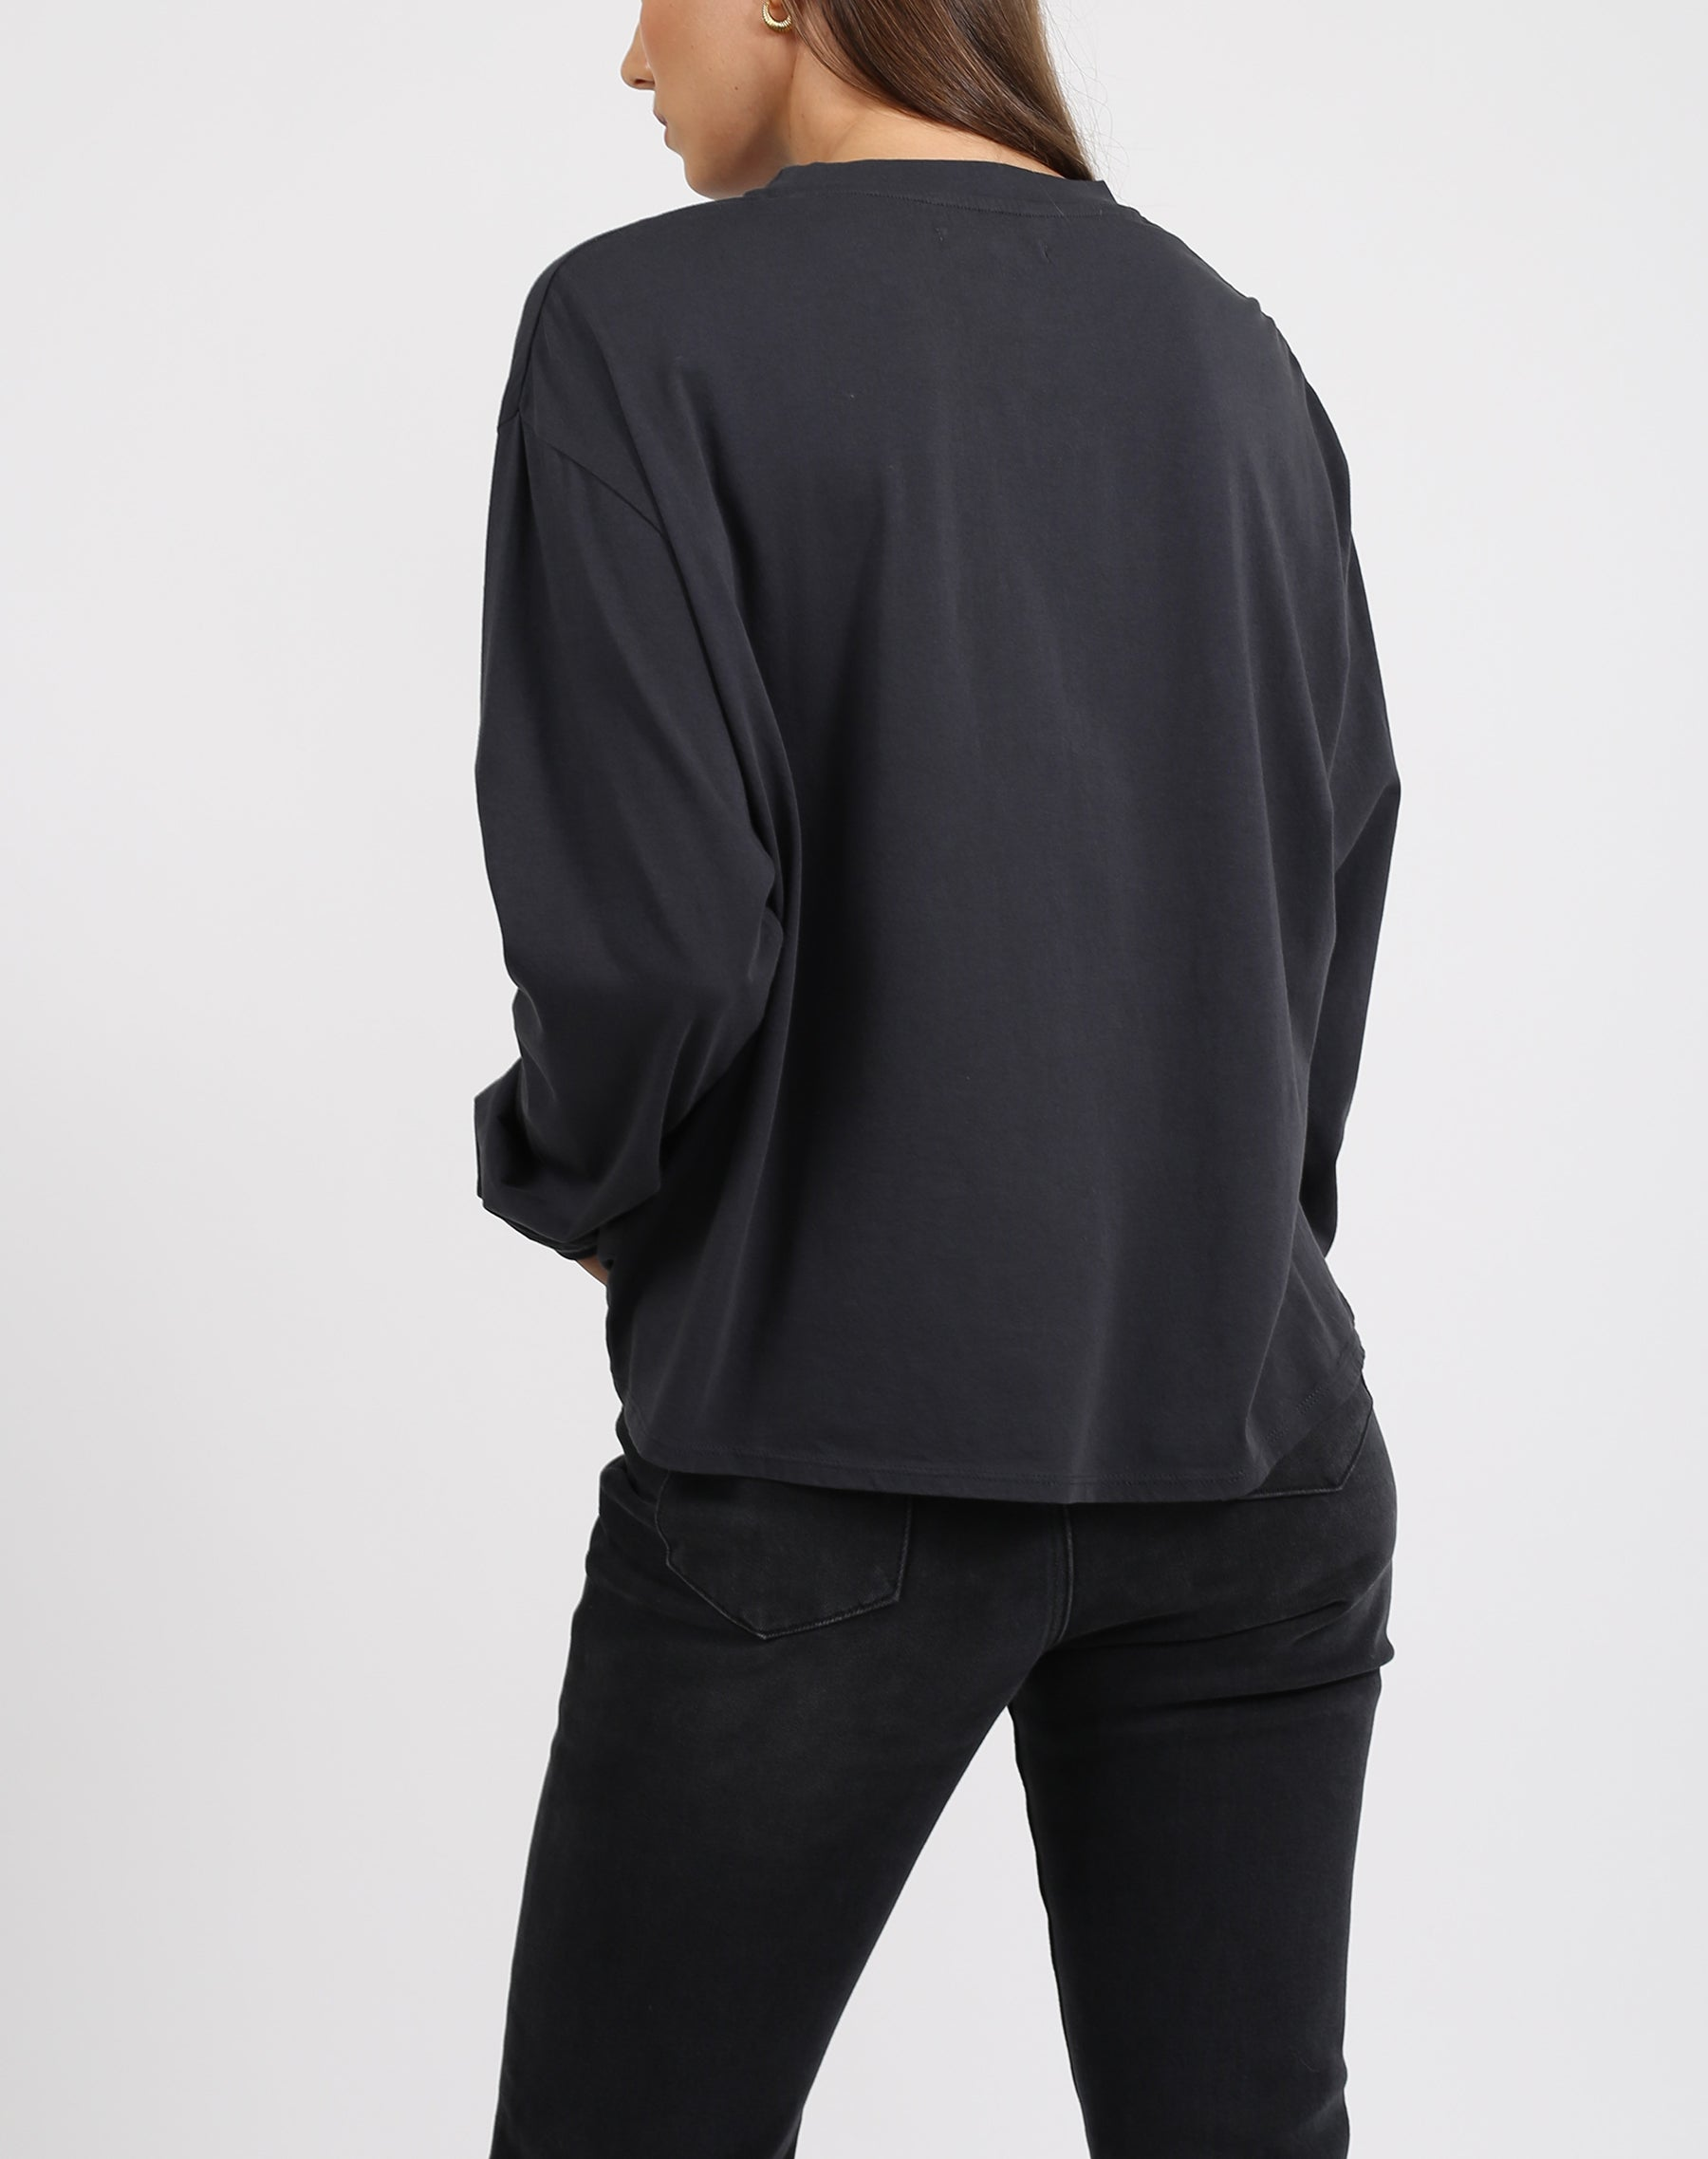 This is a photo of the back of a model wearing the 1981 mystic long sleeve boxy tee crew neck in charcoal by brunette the label.